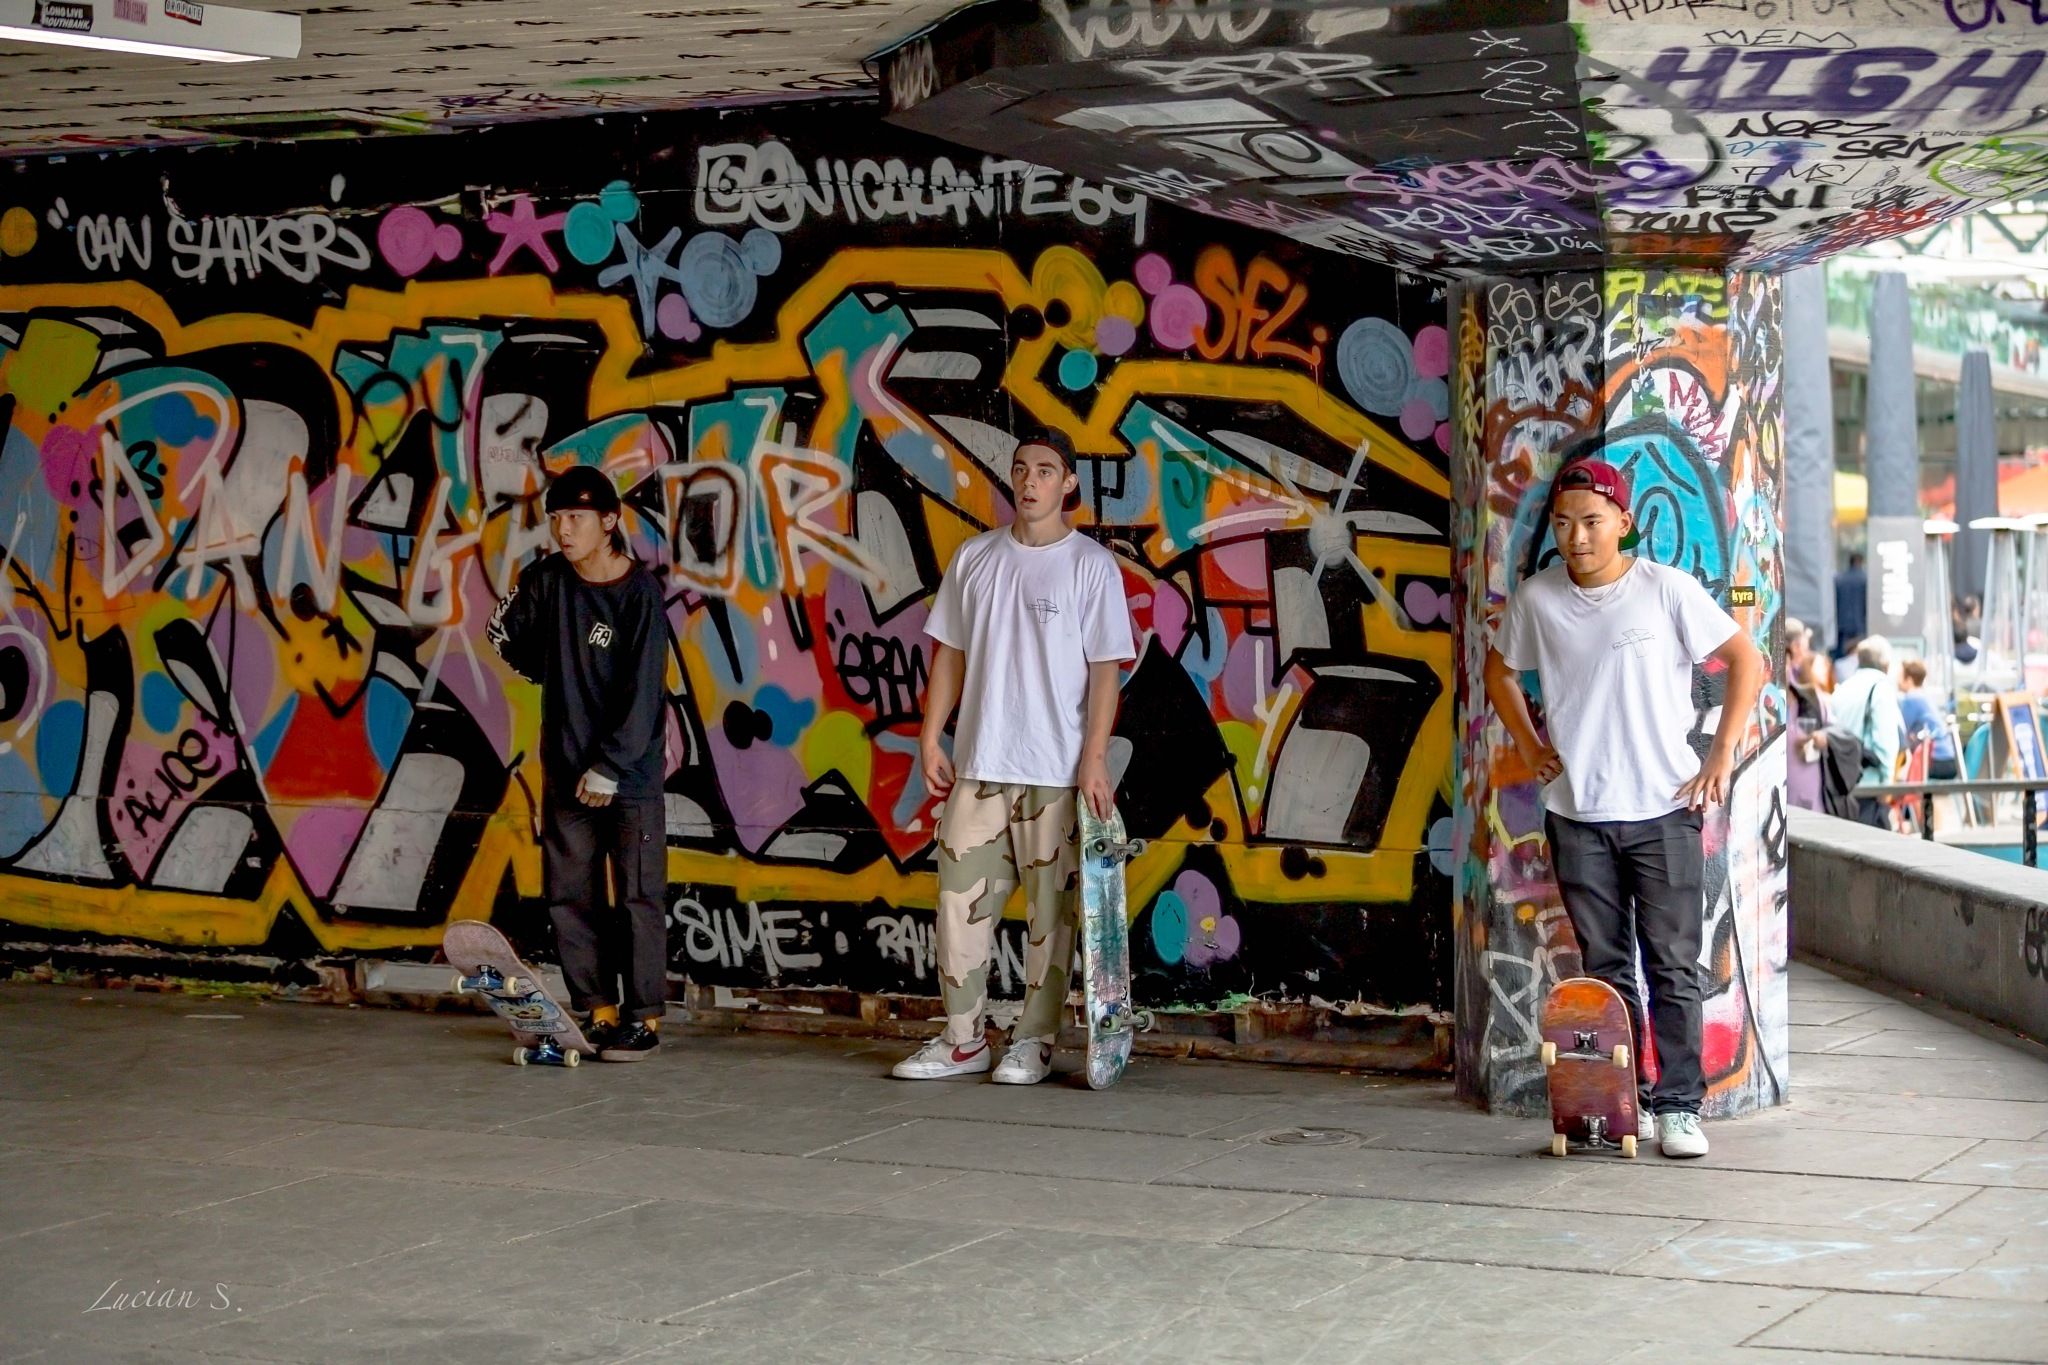 Skateboarders, London! by Lucian Smarandache